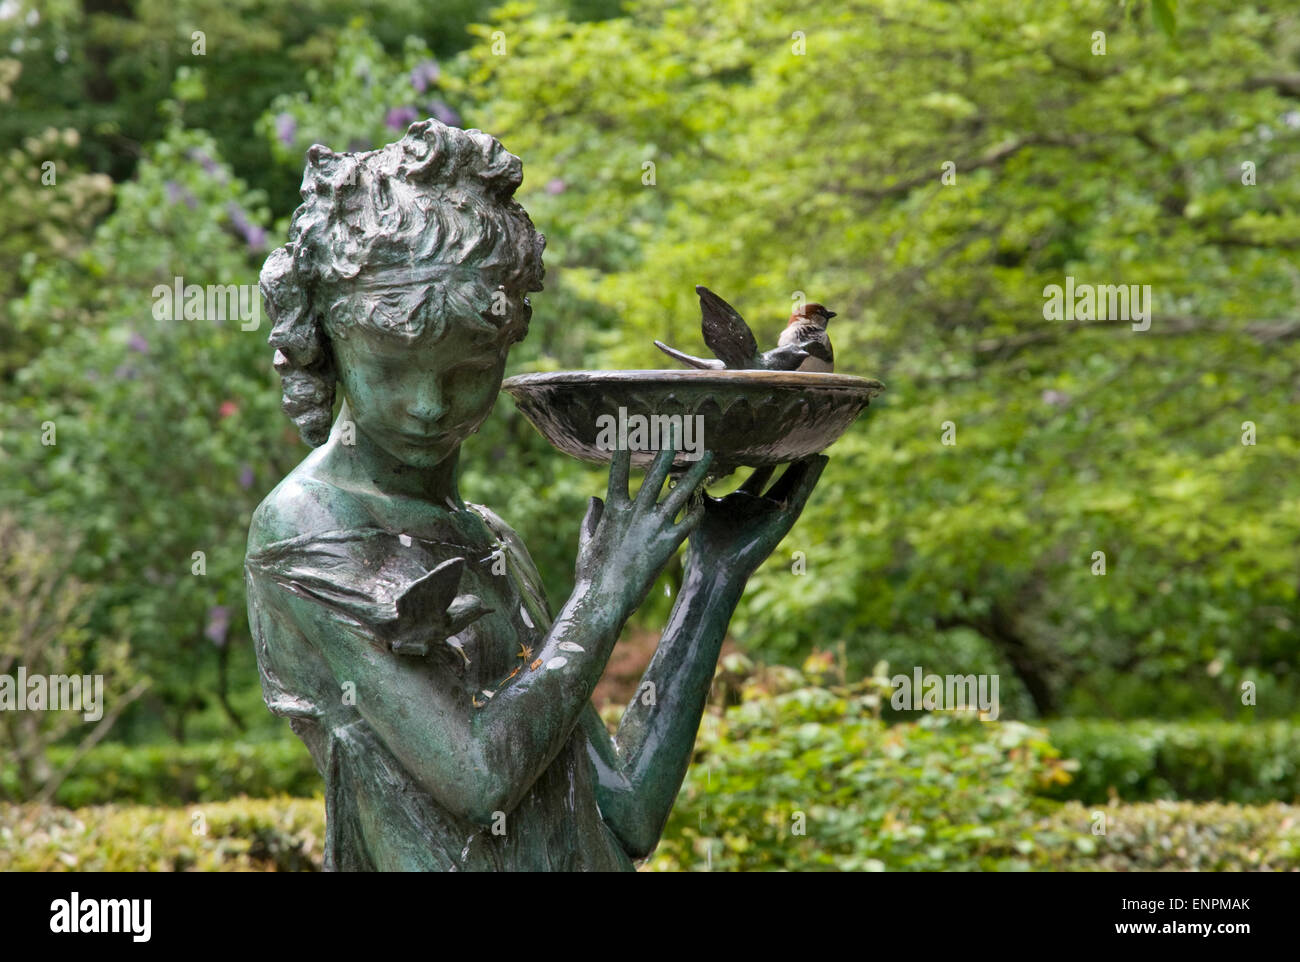 Secret Garden fountain at the Conservatory Garden in Central Park, New York - Stock Image